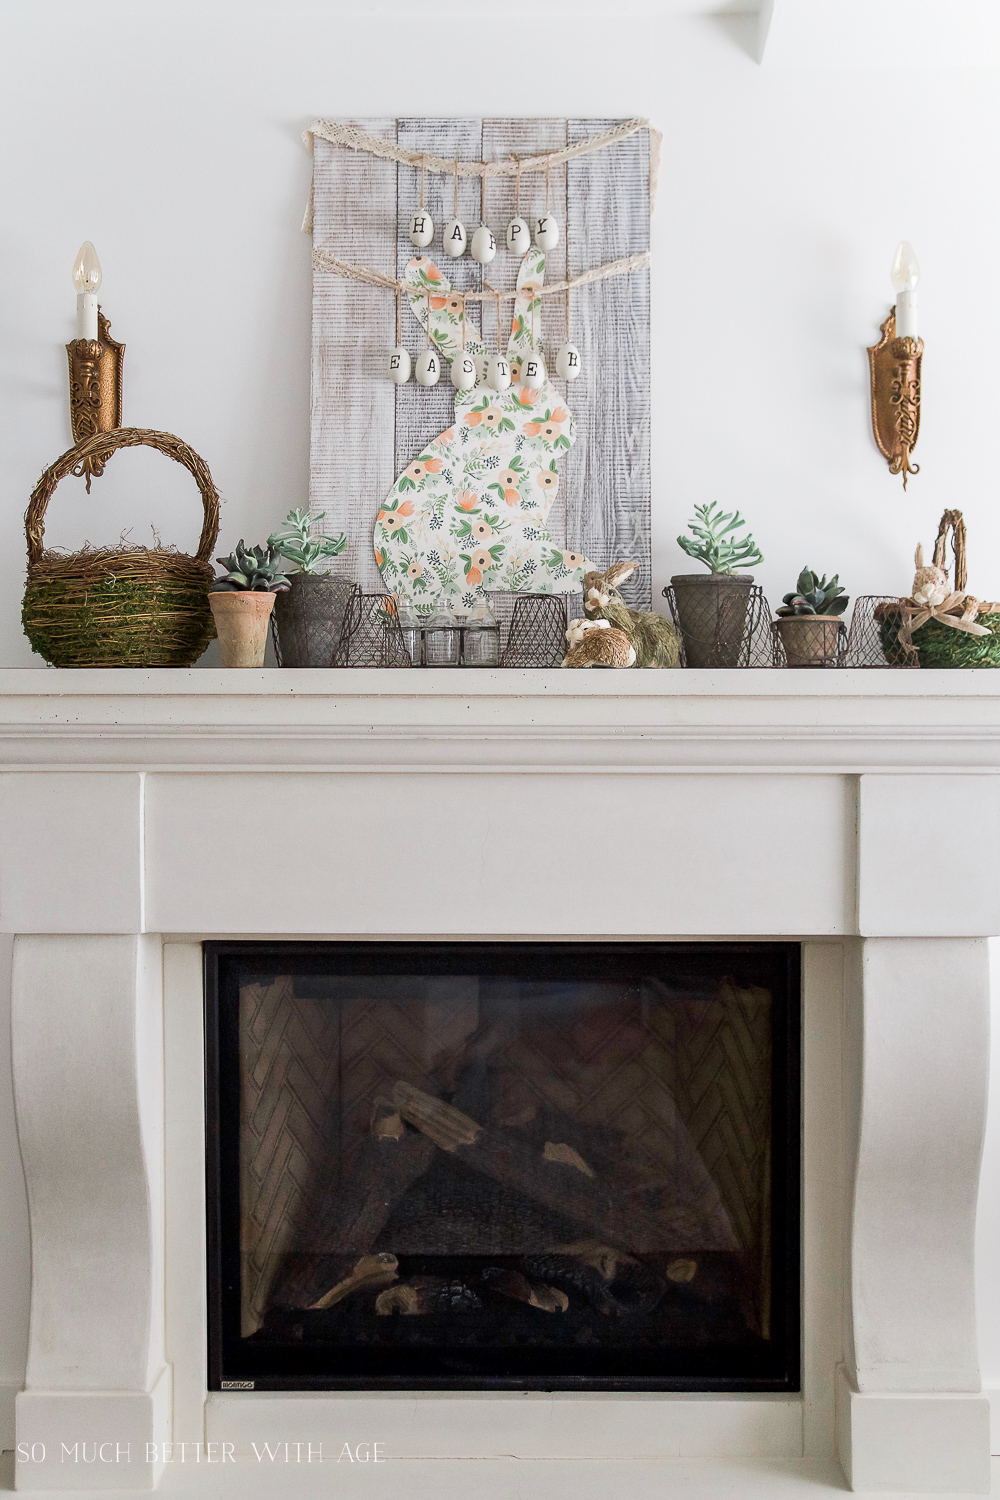 Spring Mantel/succulents, baskets on mantel - So Much Better With Age